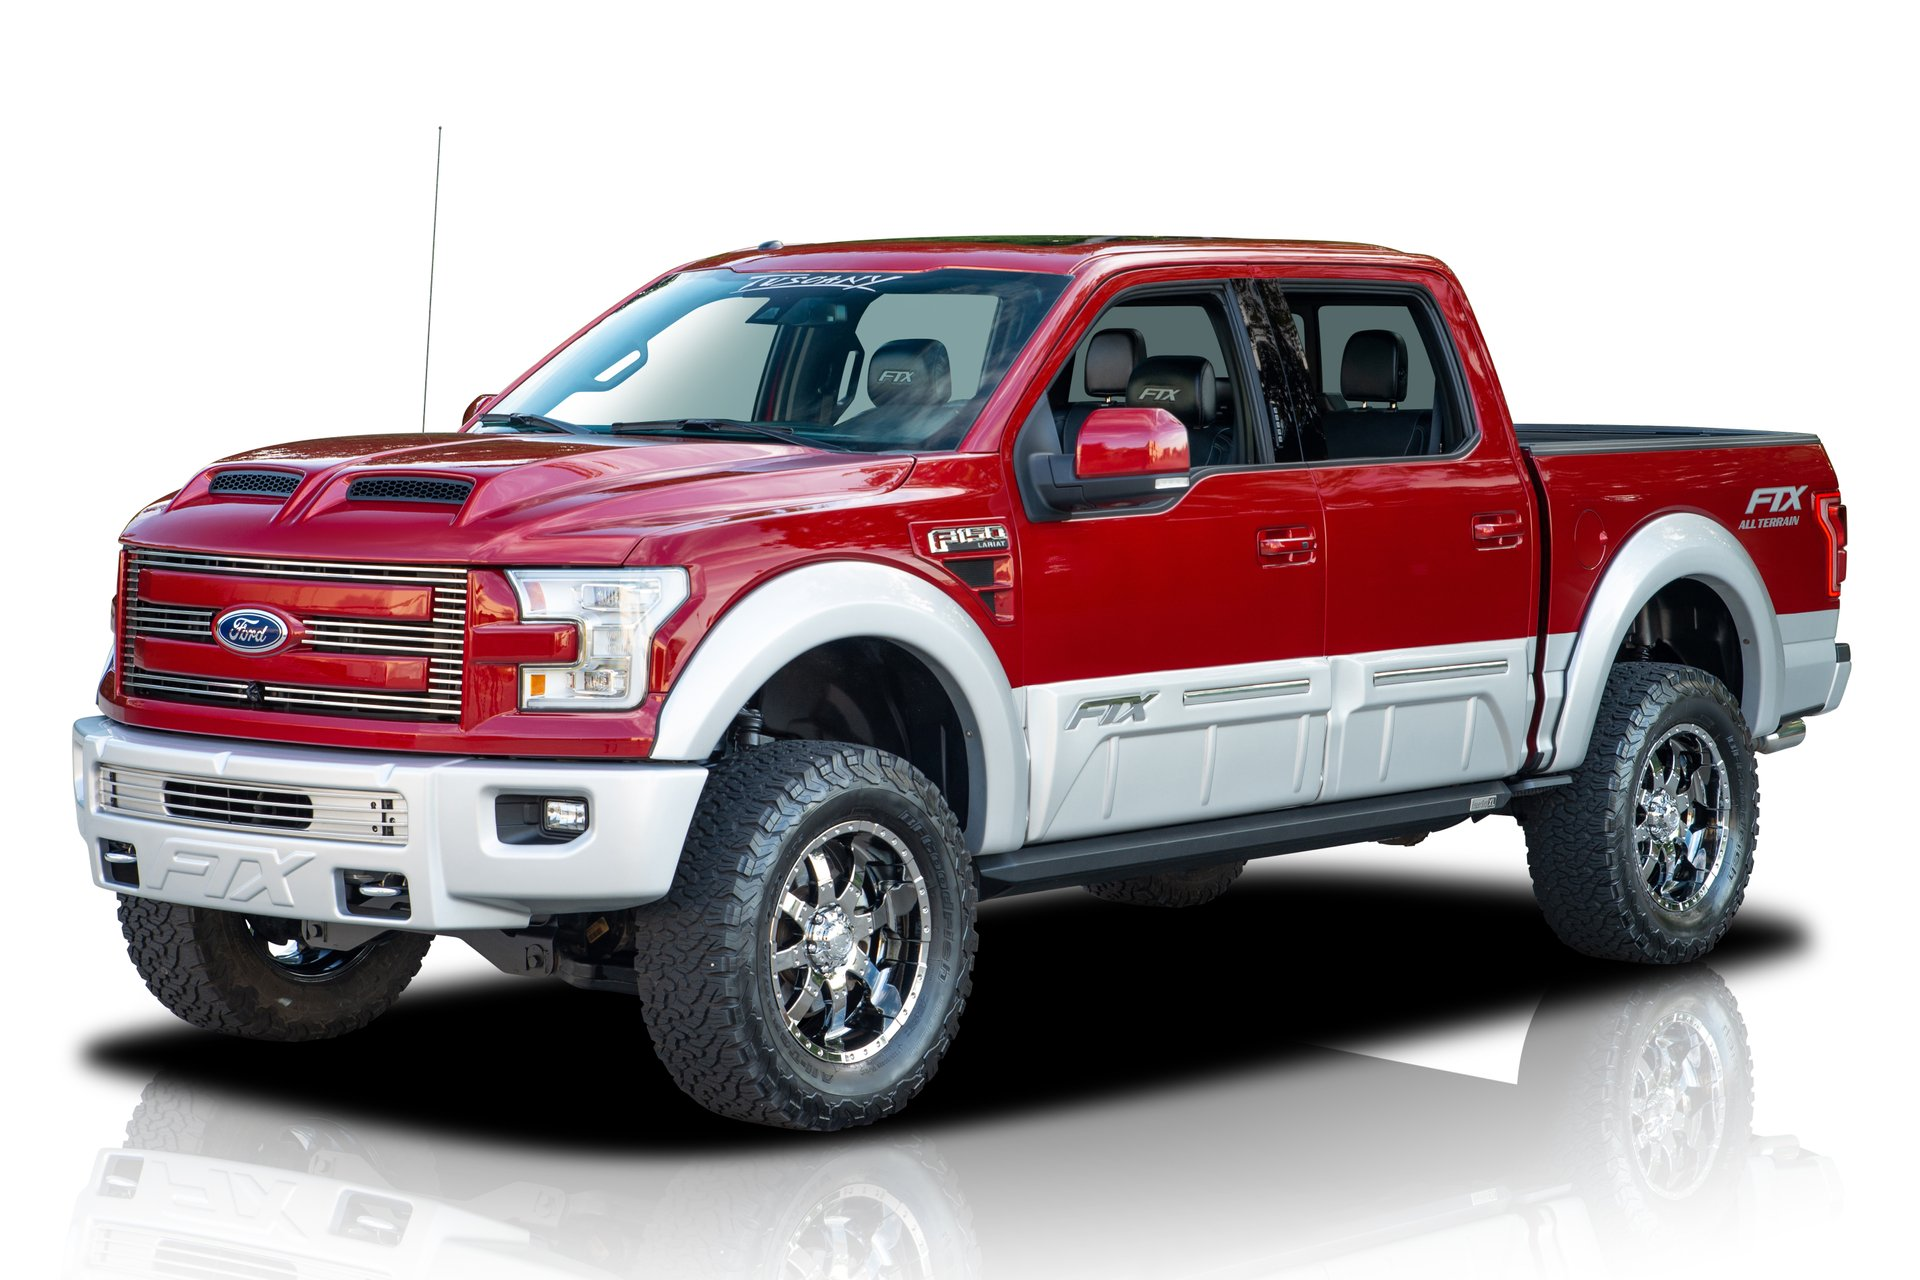 2015 ford f150 ftx supercrew tuscany